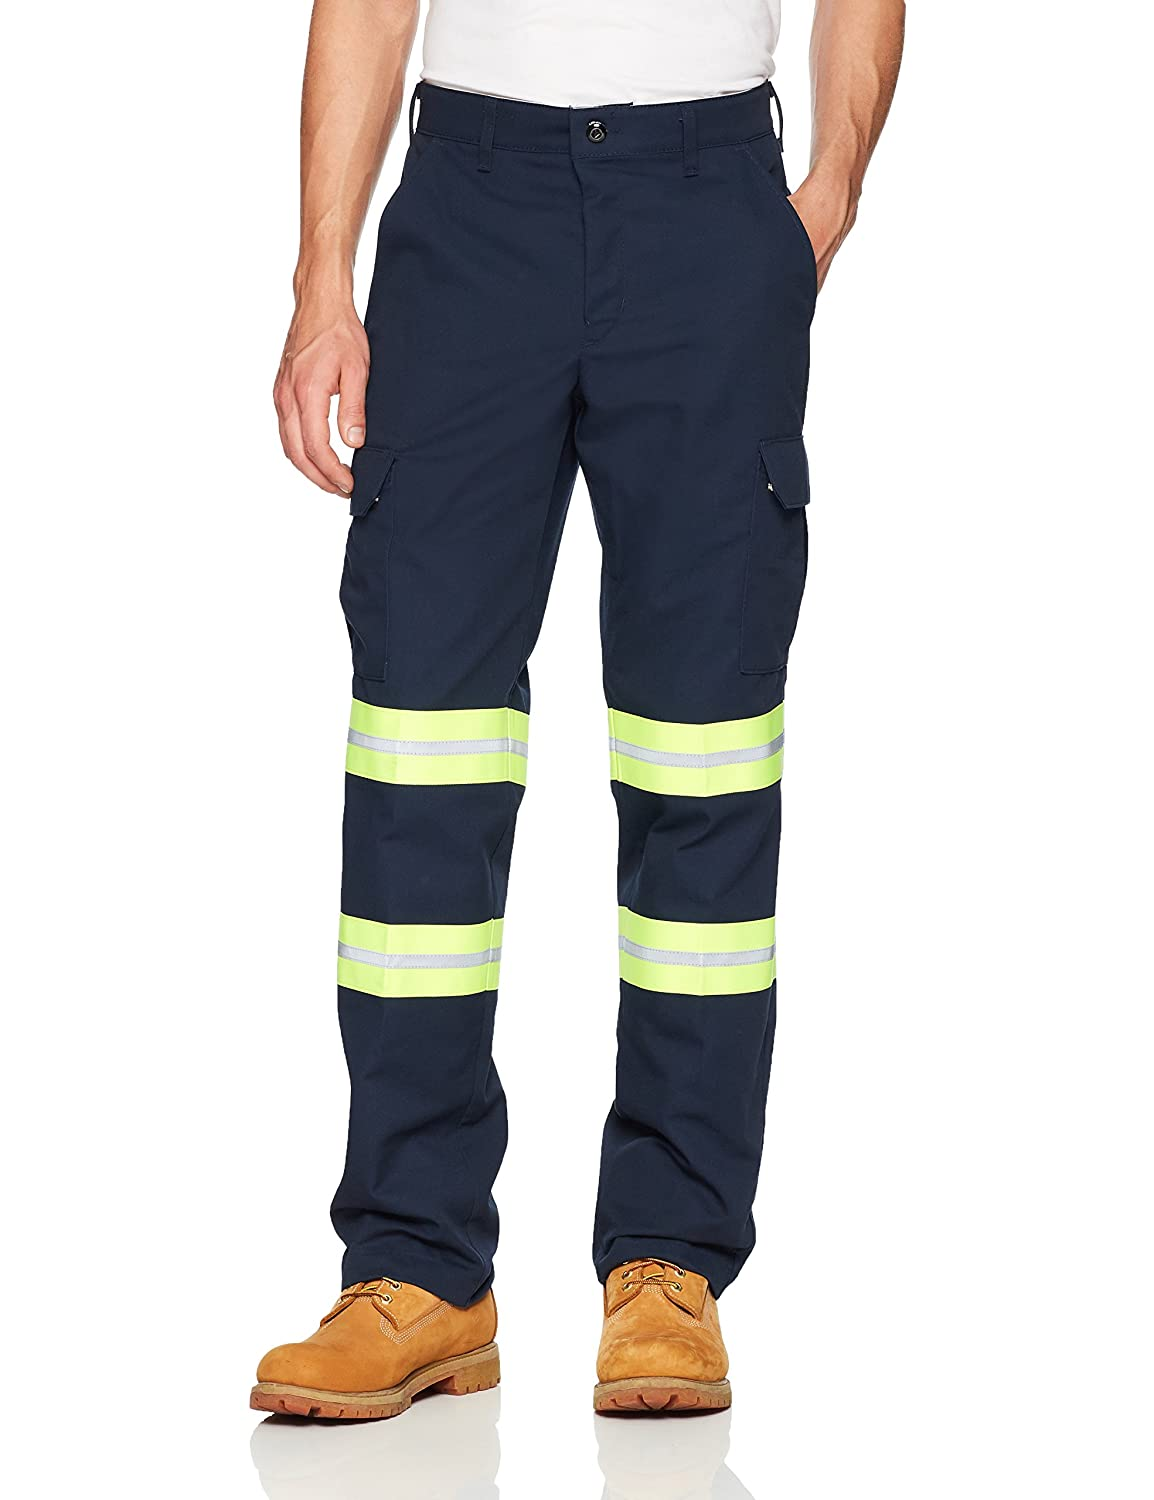 Red Kap PANTS メンズ B072ZSDCWF 40W x 32L|Navy With Yellow/Green Visibility Trim Navy With Yellow/Green Visibility Trim 40W x 32L